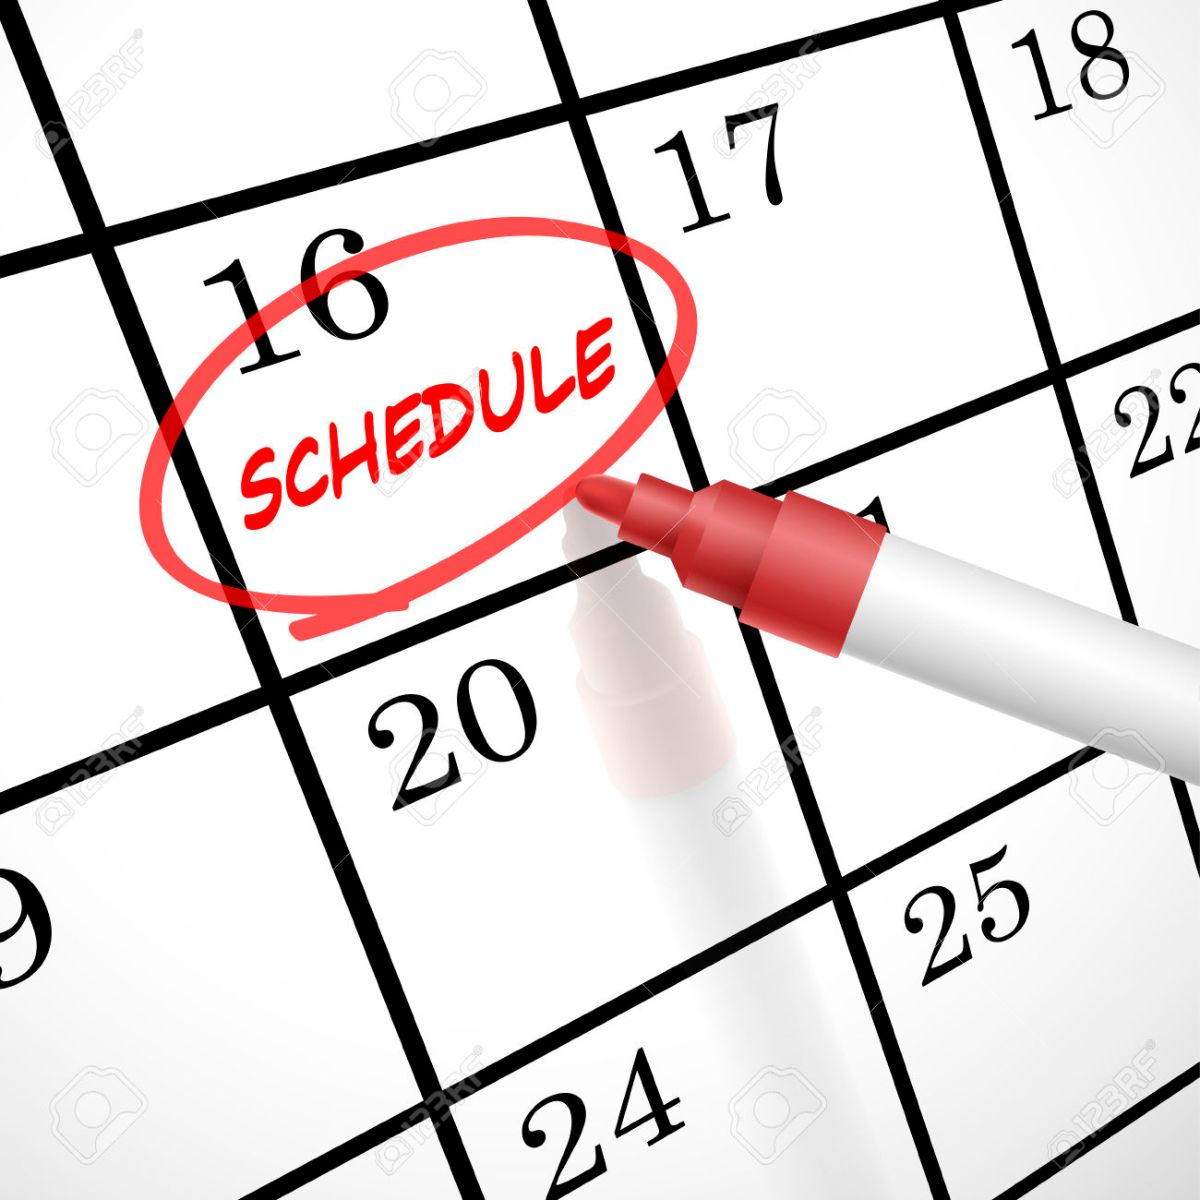 How to Check Your Schedule